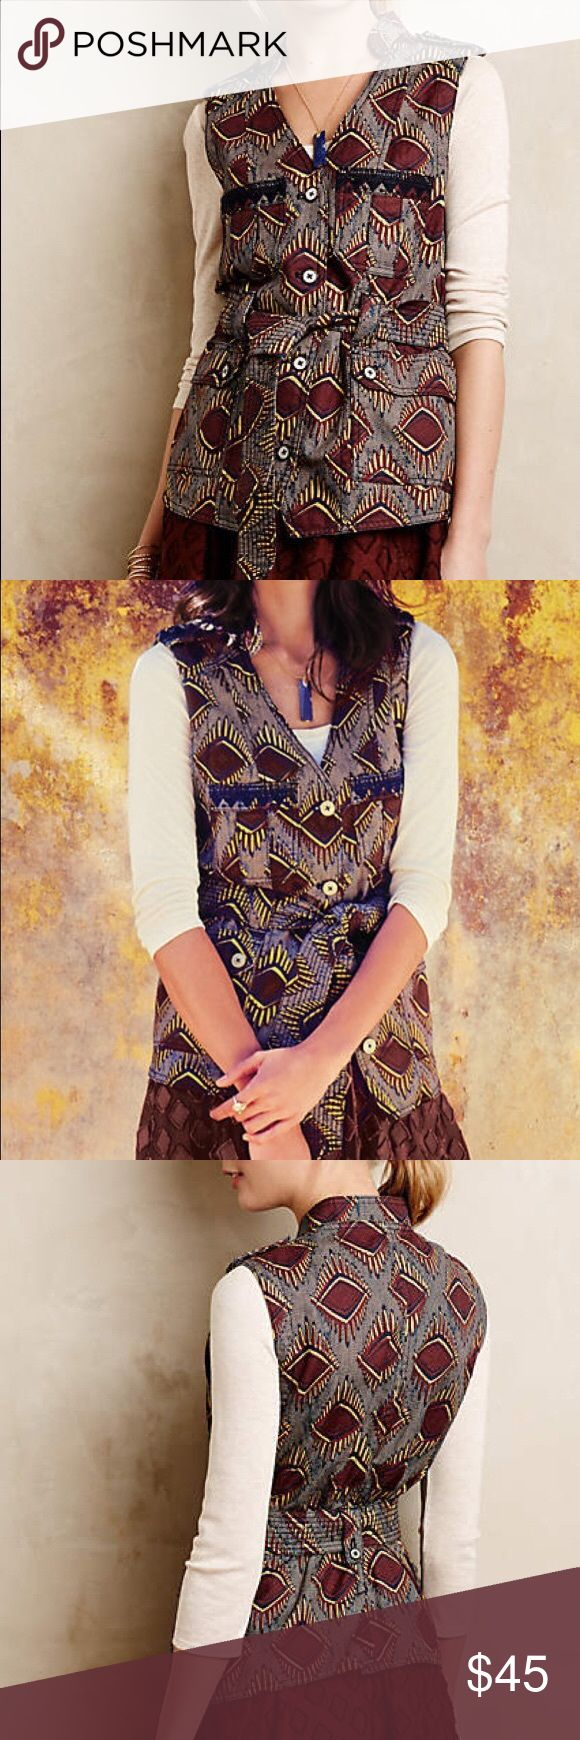 Anthropologie Elevenses safari vest Navy garnet and yellow tribal printed safari vest. Has a button detailing on the shoulder and buttons down the front. Has chest and front pockets. Has a belt. Mint condition. Size small by elevenses from Anthropologie. Retails $138. Anthropologie Jackets & Coats Vests